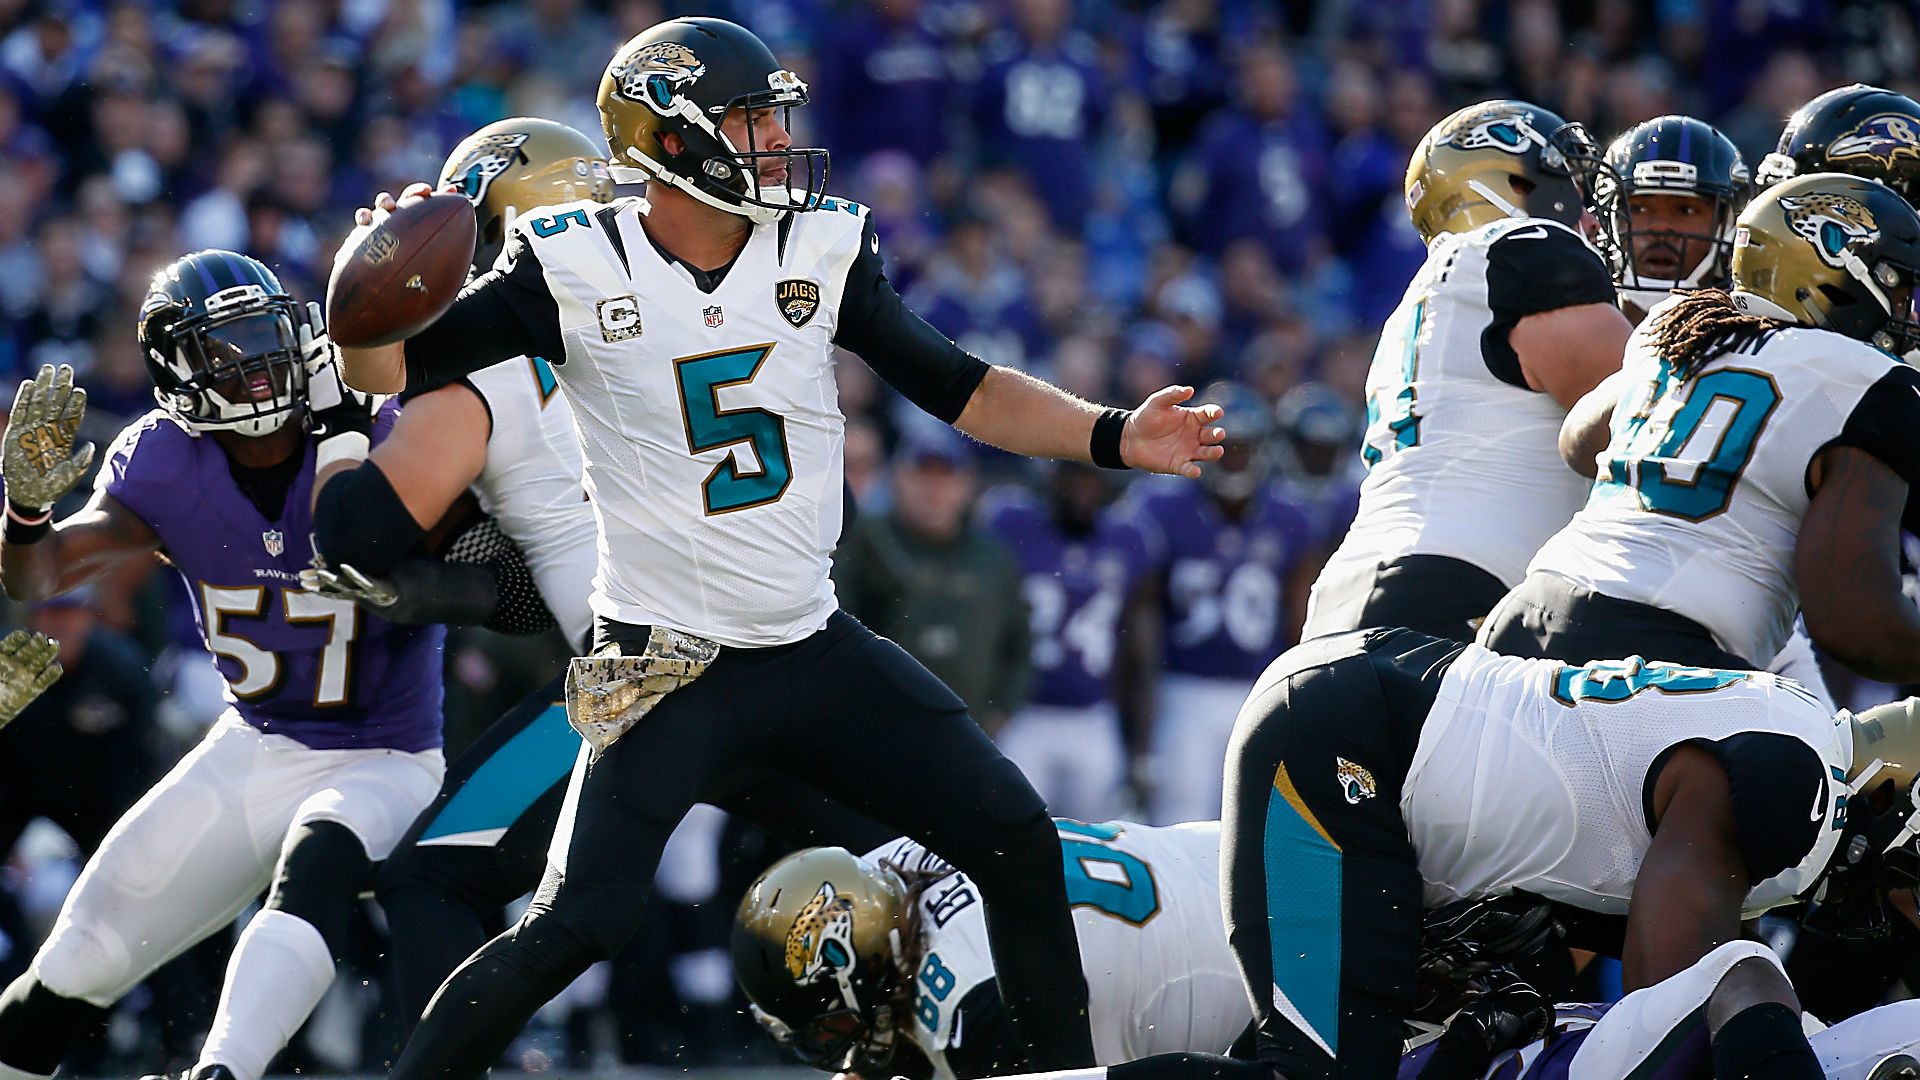 Titans at Jaguars betting lines and pick – Jacksonville in unfamiliar role as favorite